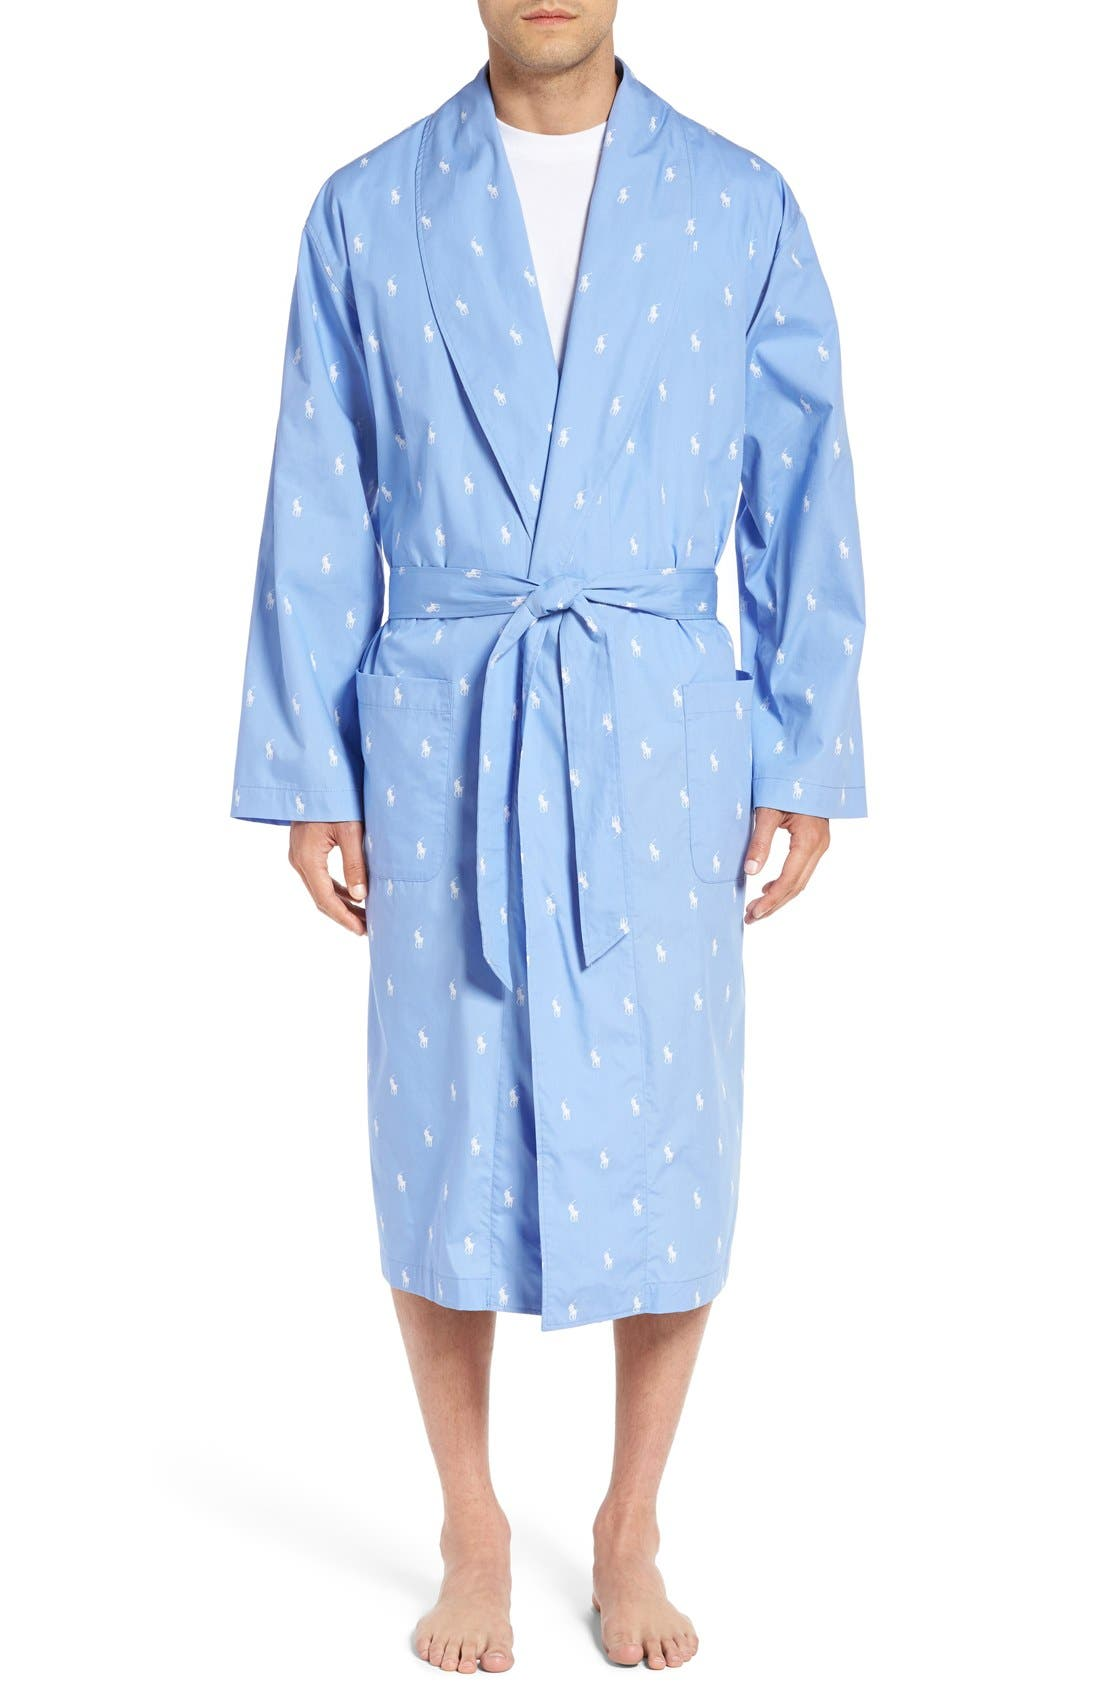 POLO RALPH LAUREN 'Polo Player' Cotton Robe, Main, color, BEACH BLUE